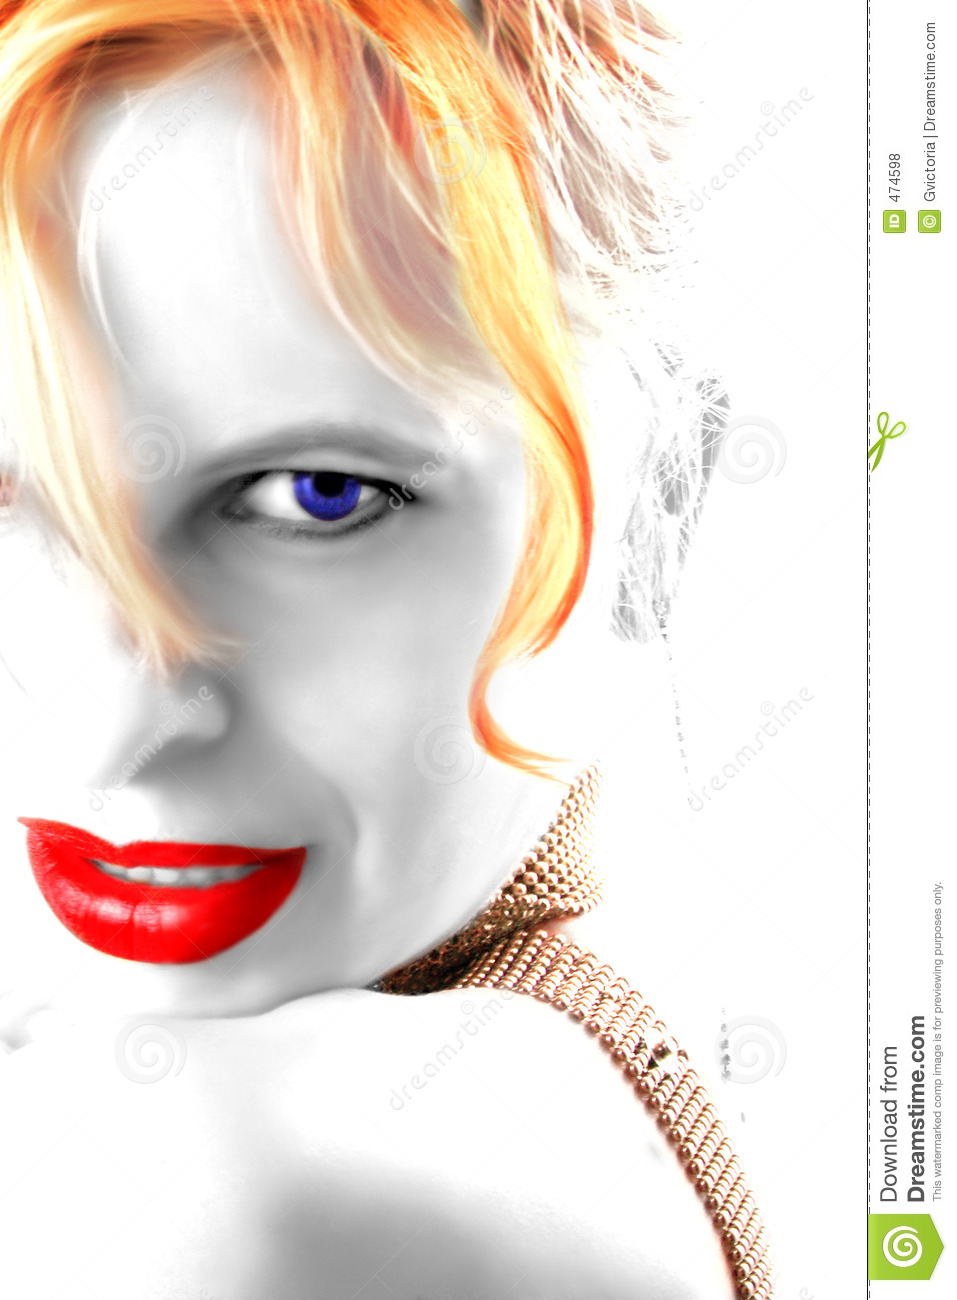 Download Lipstick and eyes stock illustration. Illustration of female - 474598